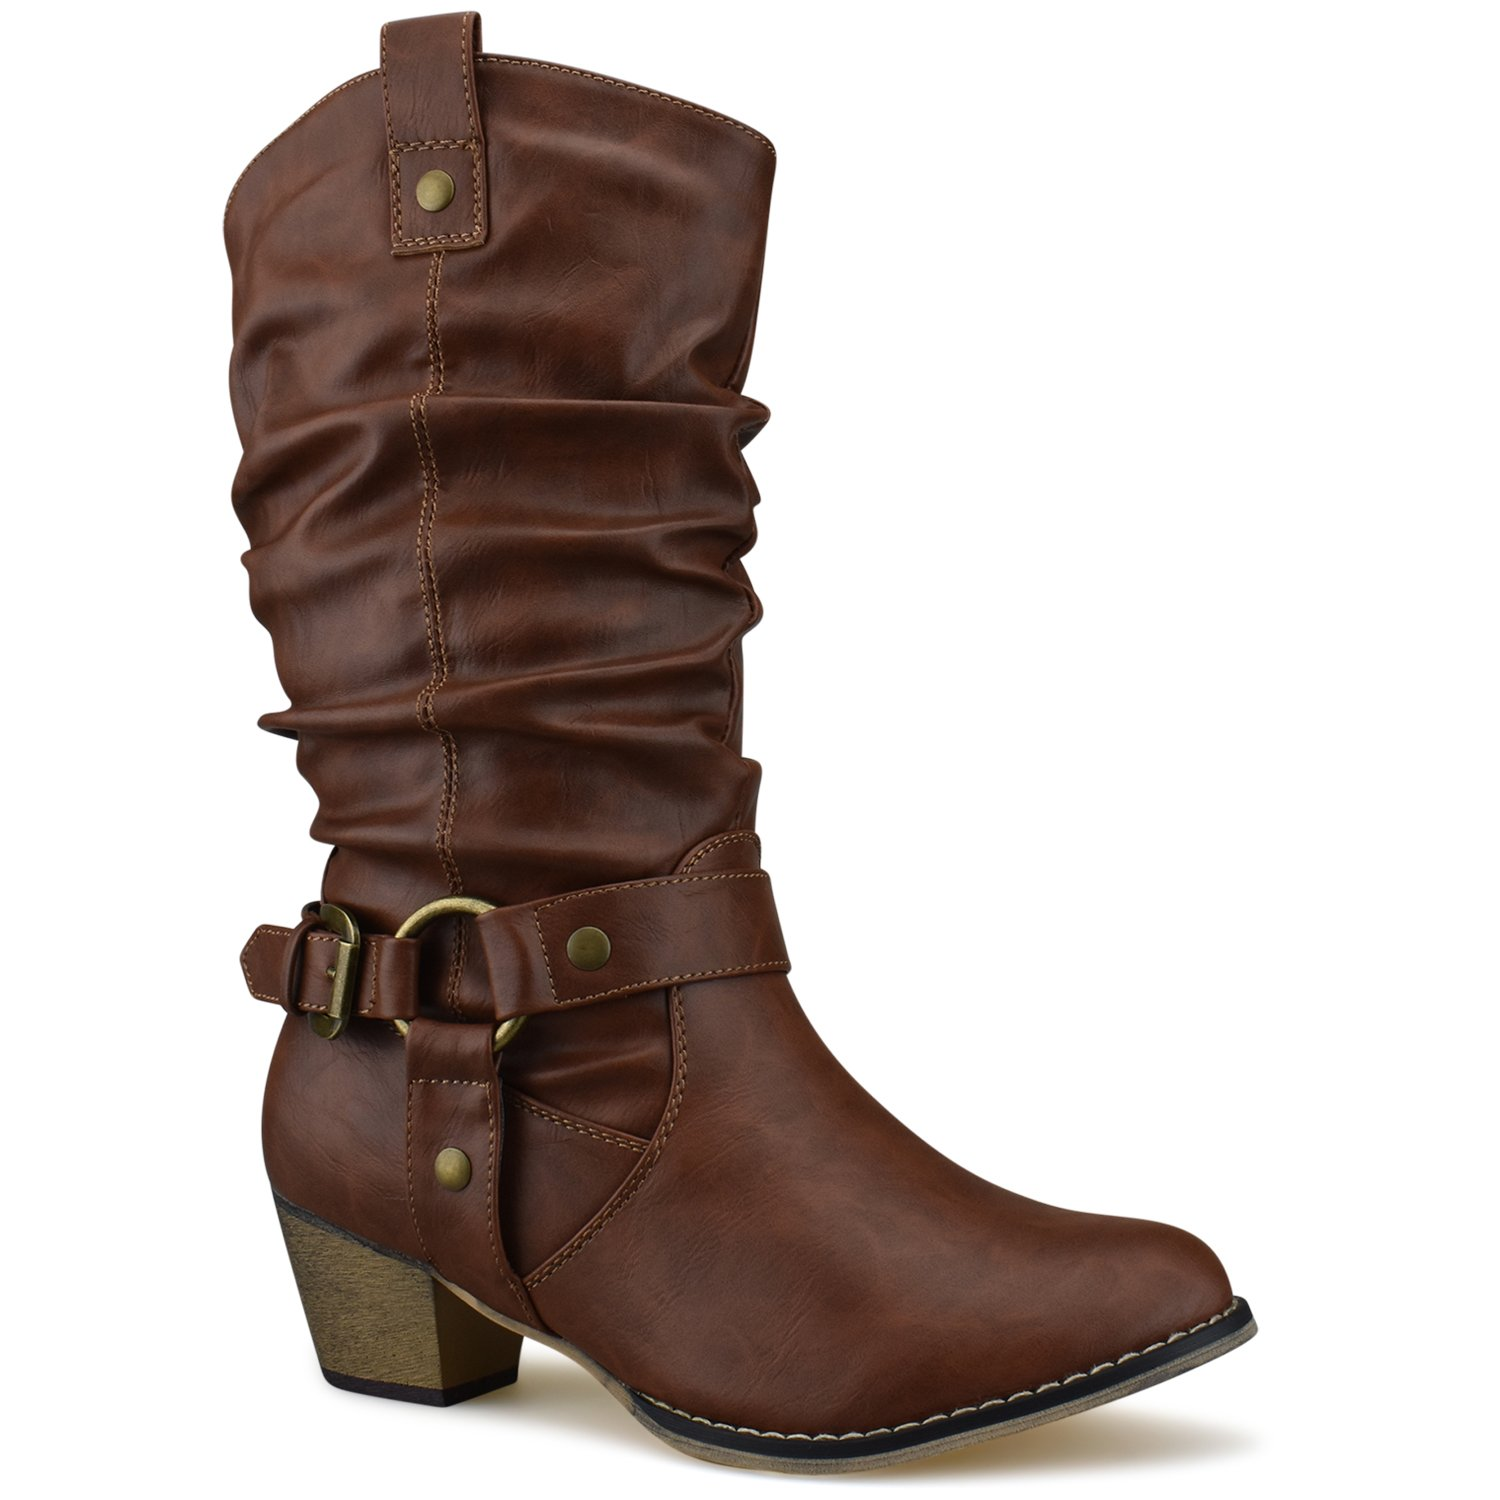 Women's Western Cowboy Pointed Toe Knee High Pull On Tabs Boots, TPS Wild-02 v25 Tan Size 8.5